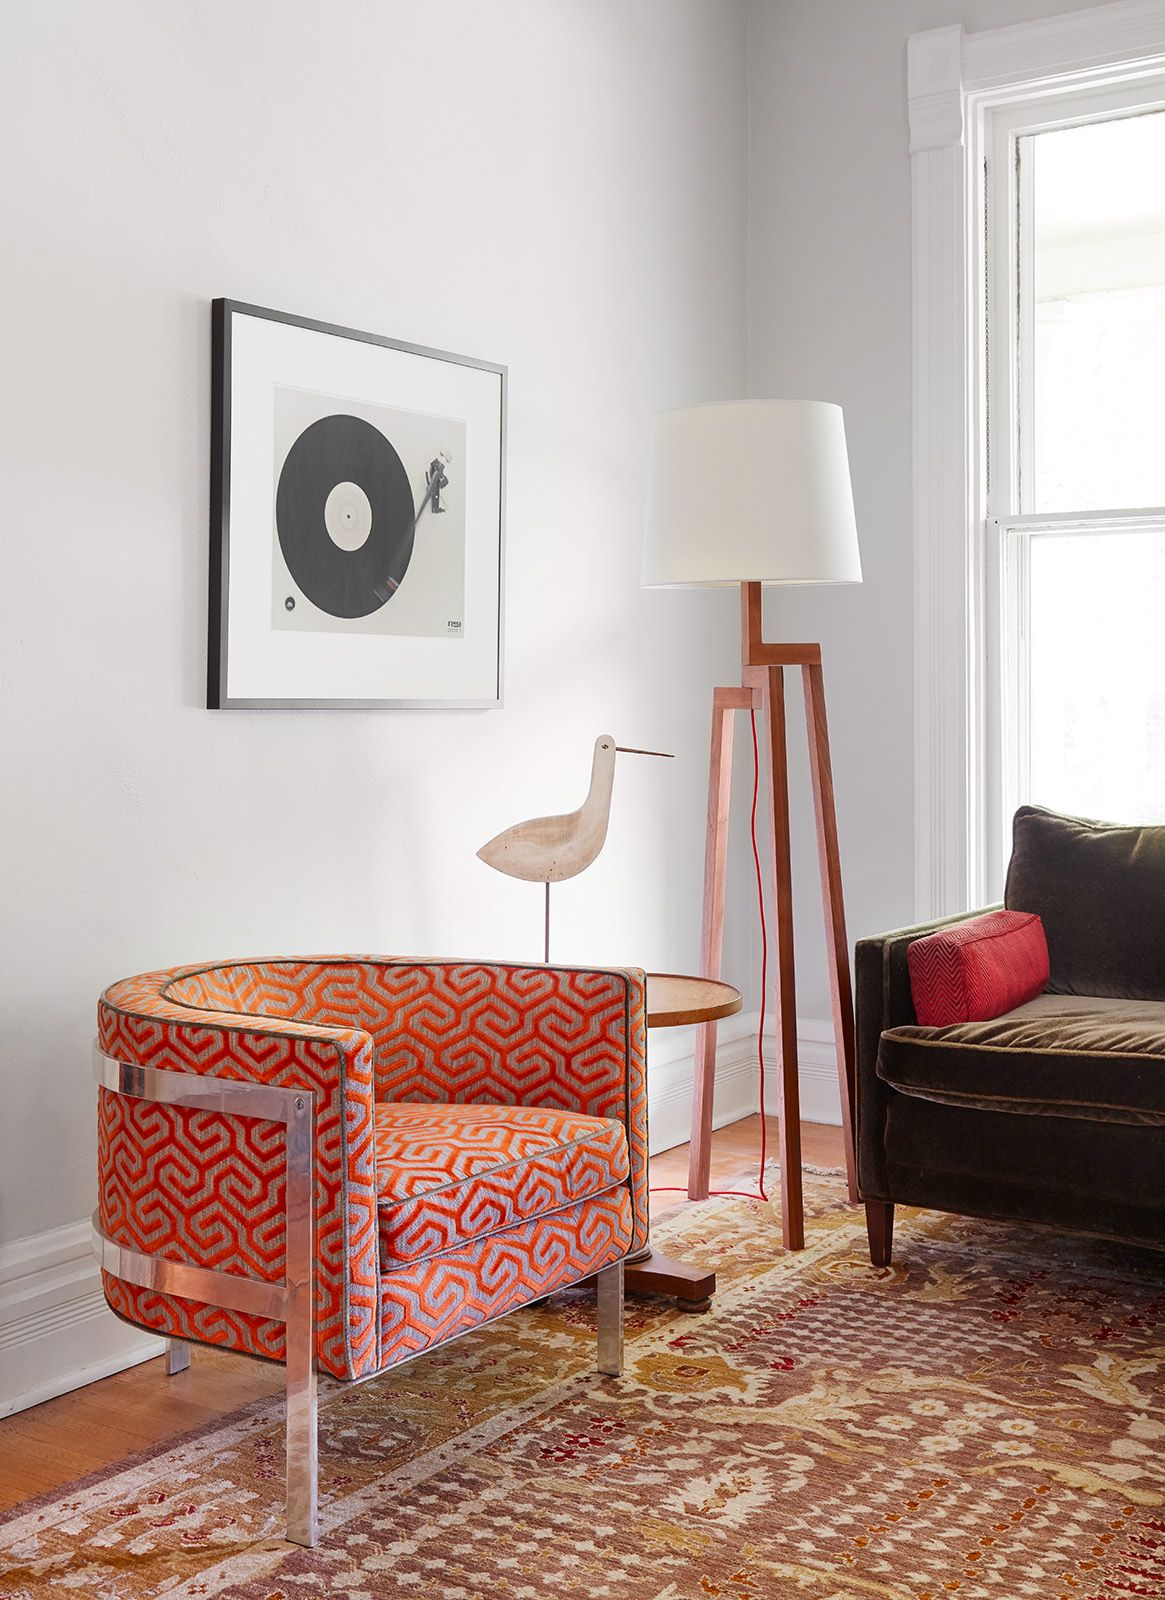 1960s Furnishings in an Historic 1880s Home | Rue | lighting ...